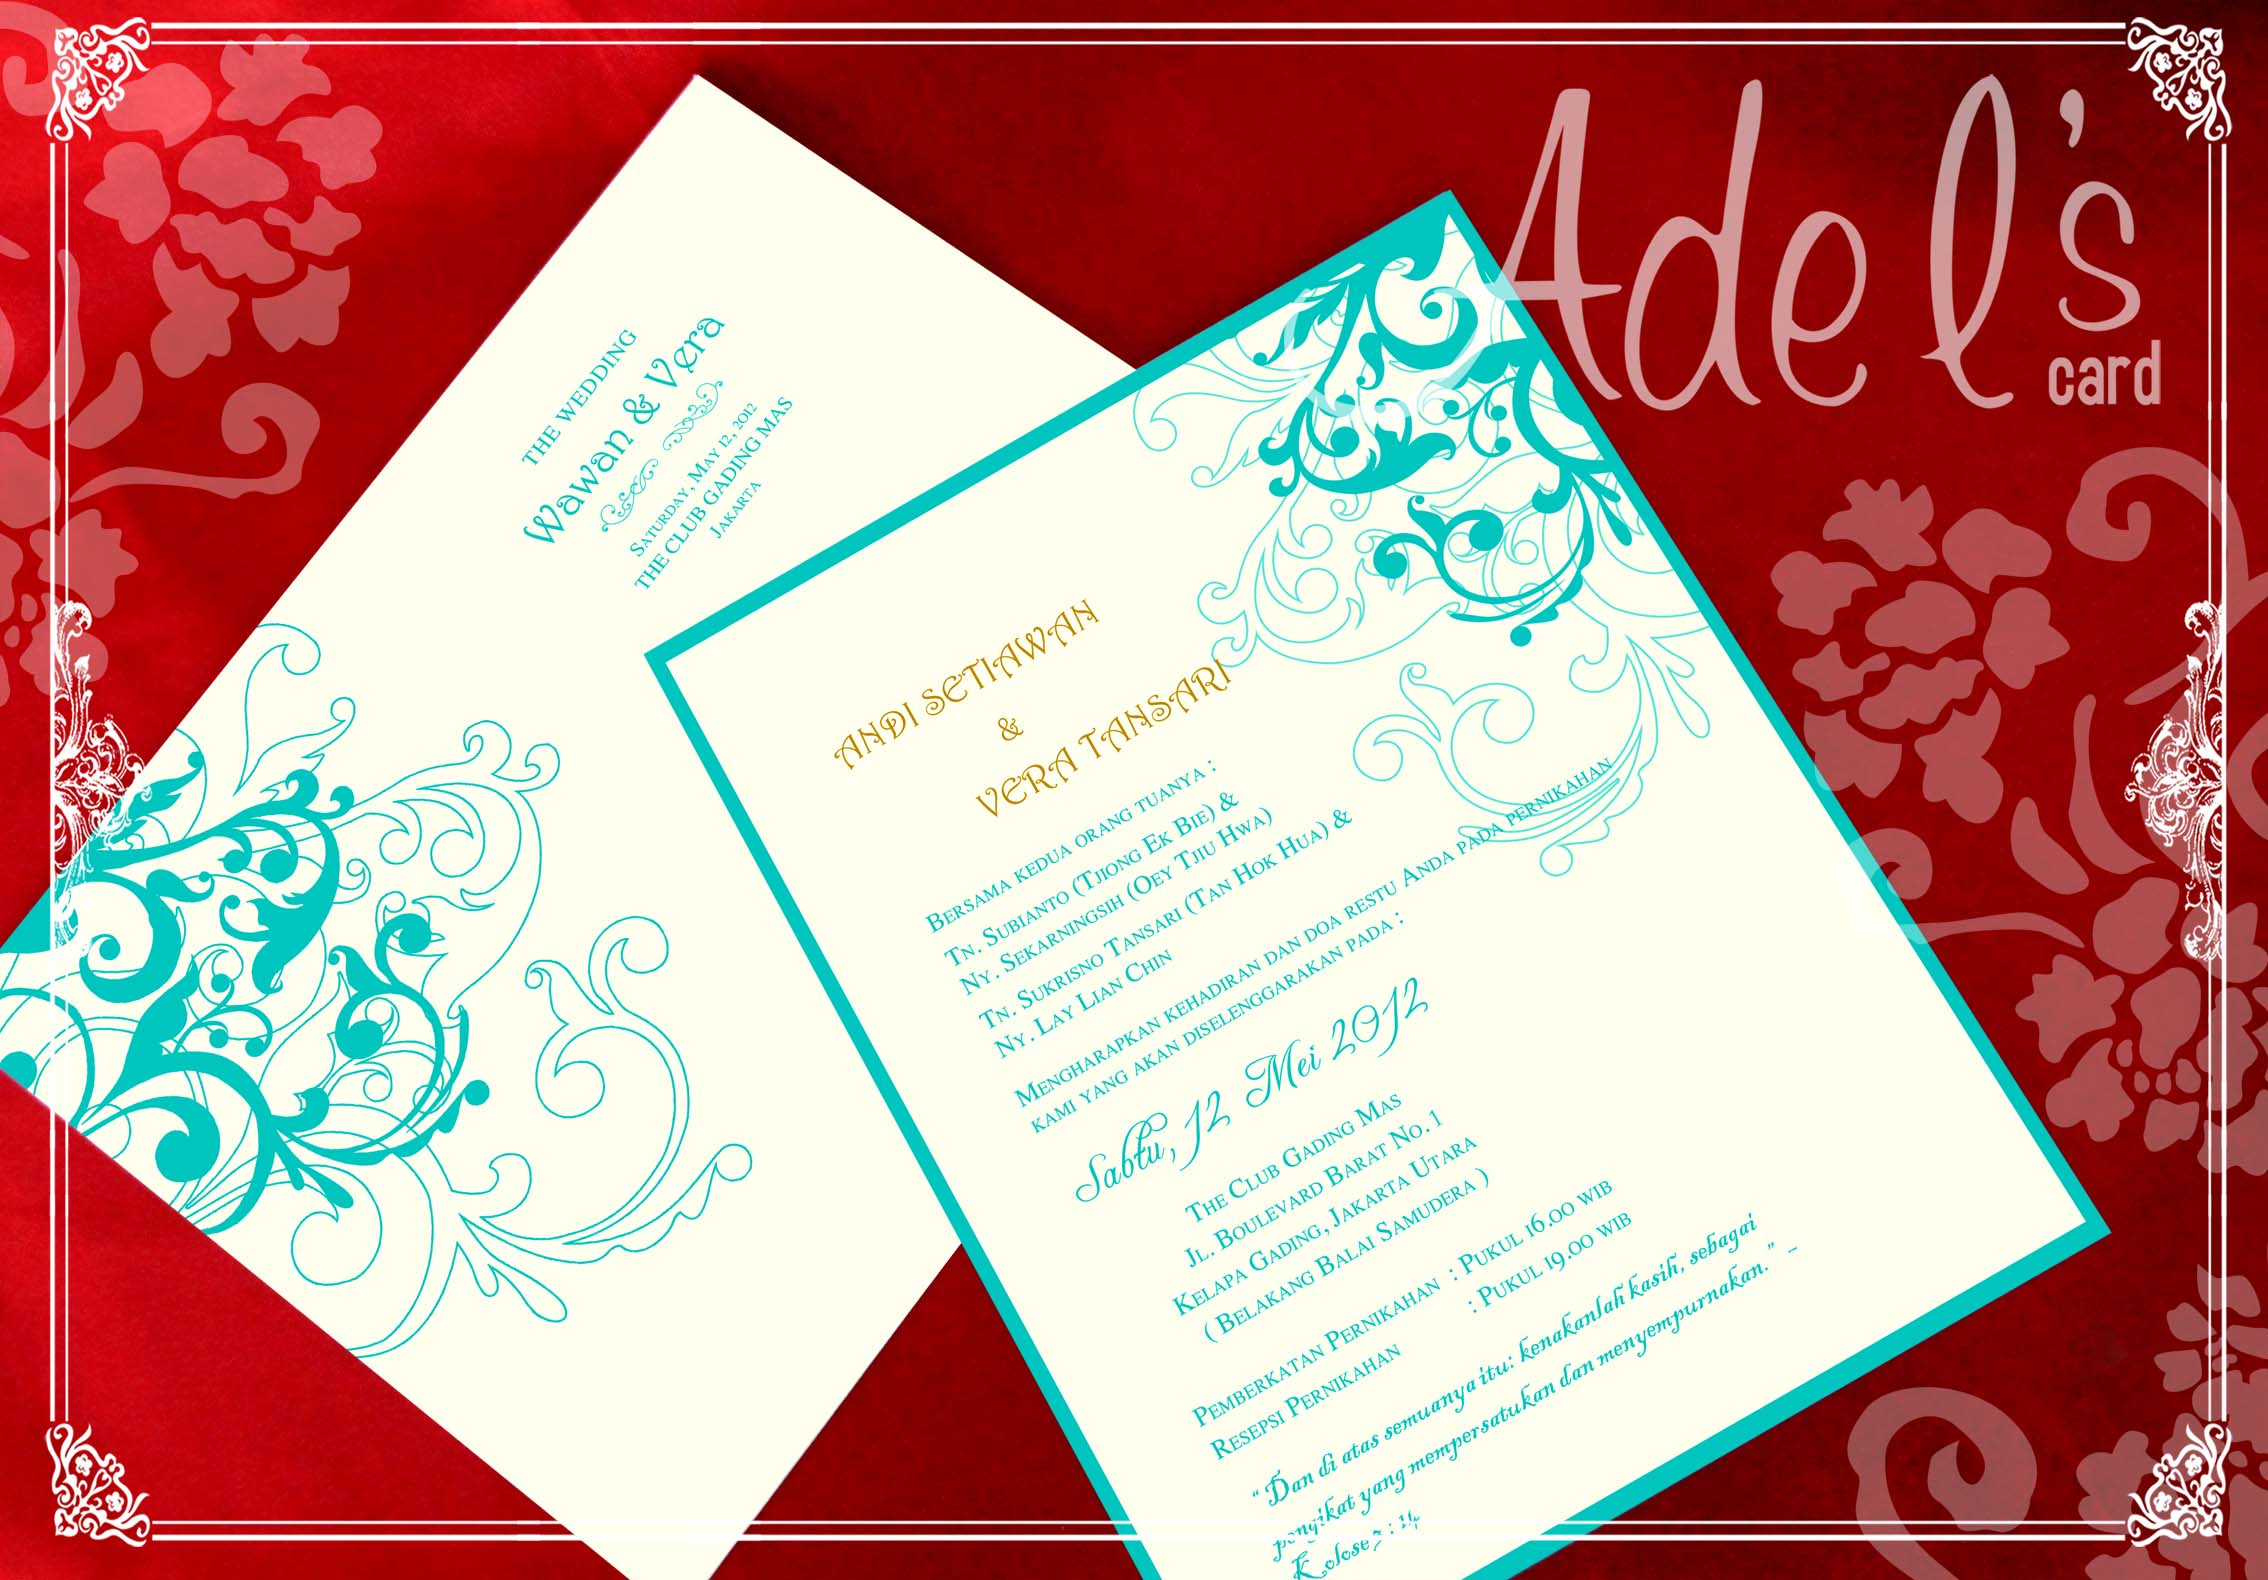 Special Wedding Card by Adel\'s House of card | Bridestory.com